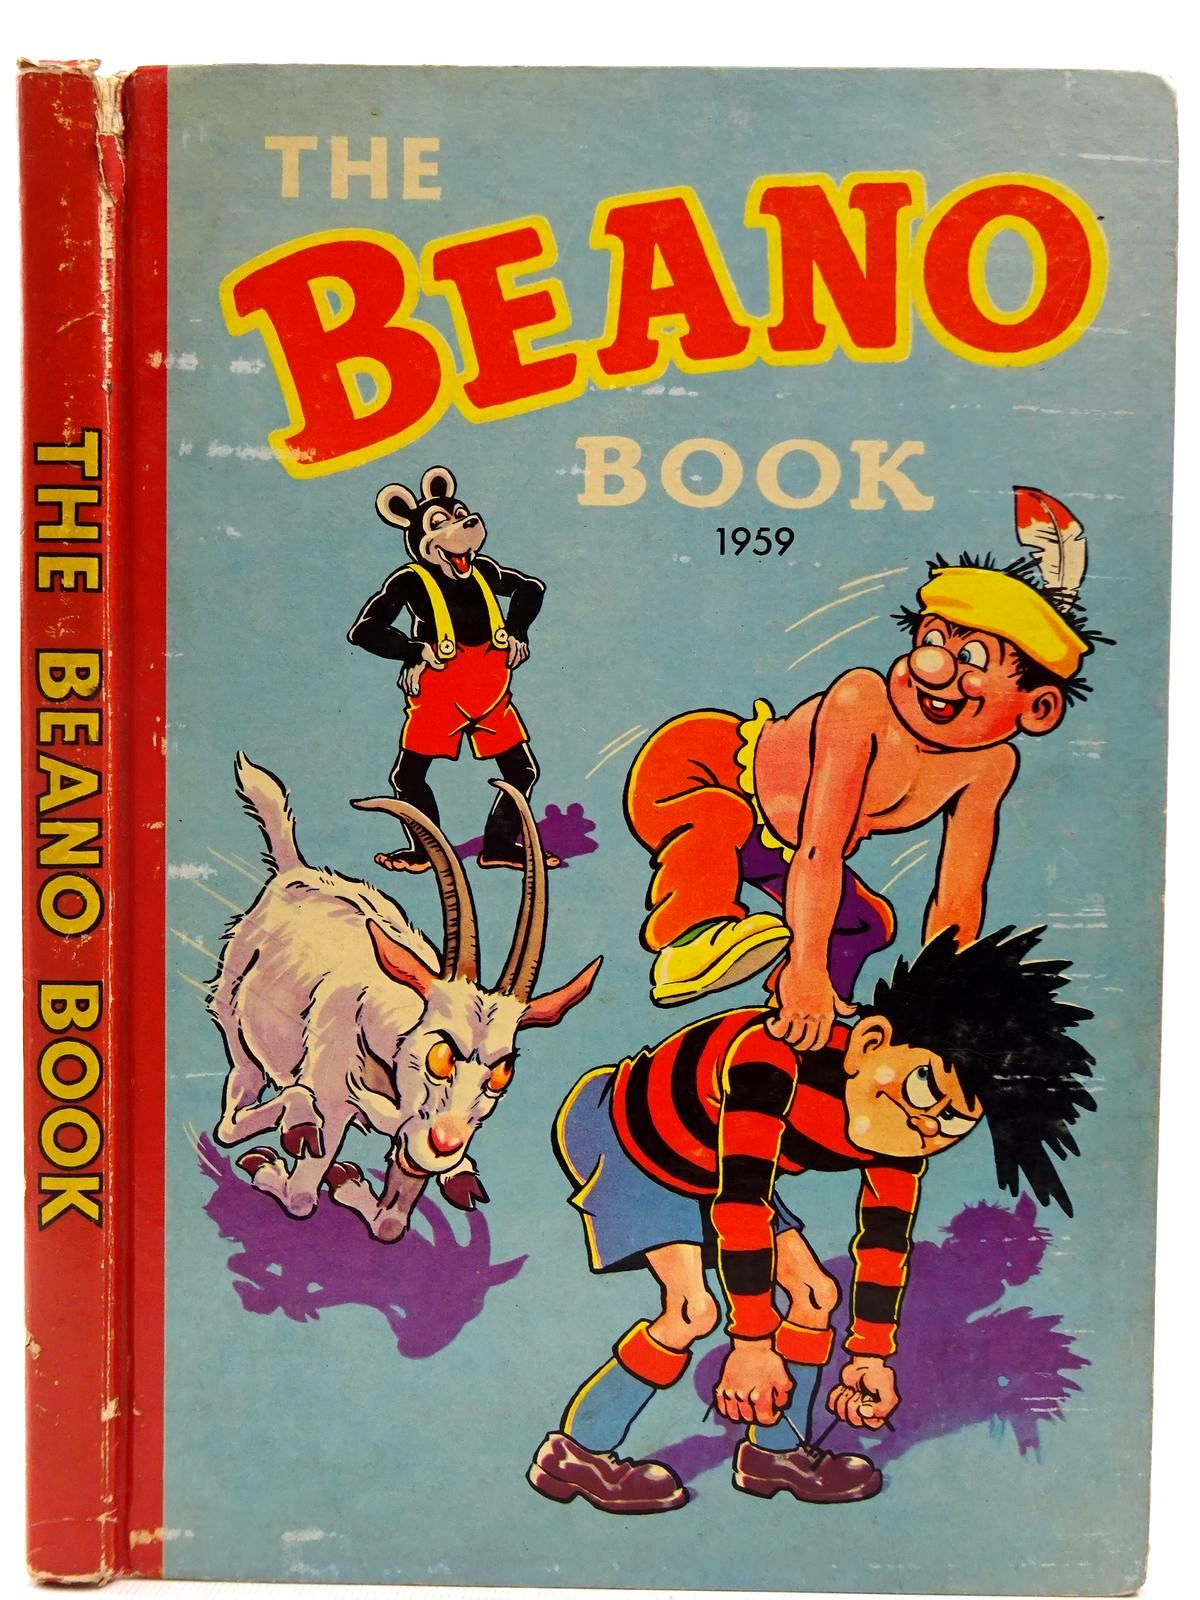 Photo of THE BEANO BOOK 1959 published by D.C. Thomson & Co Ltd. (STOCK CODE: 2128329)  for sale by Stella & Rose's Books